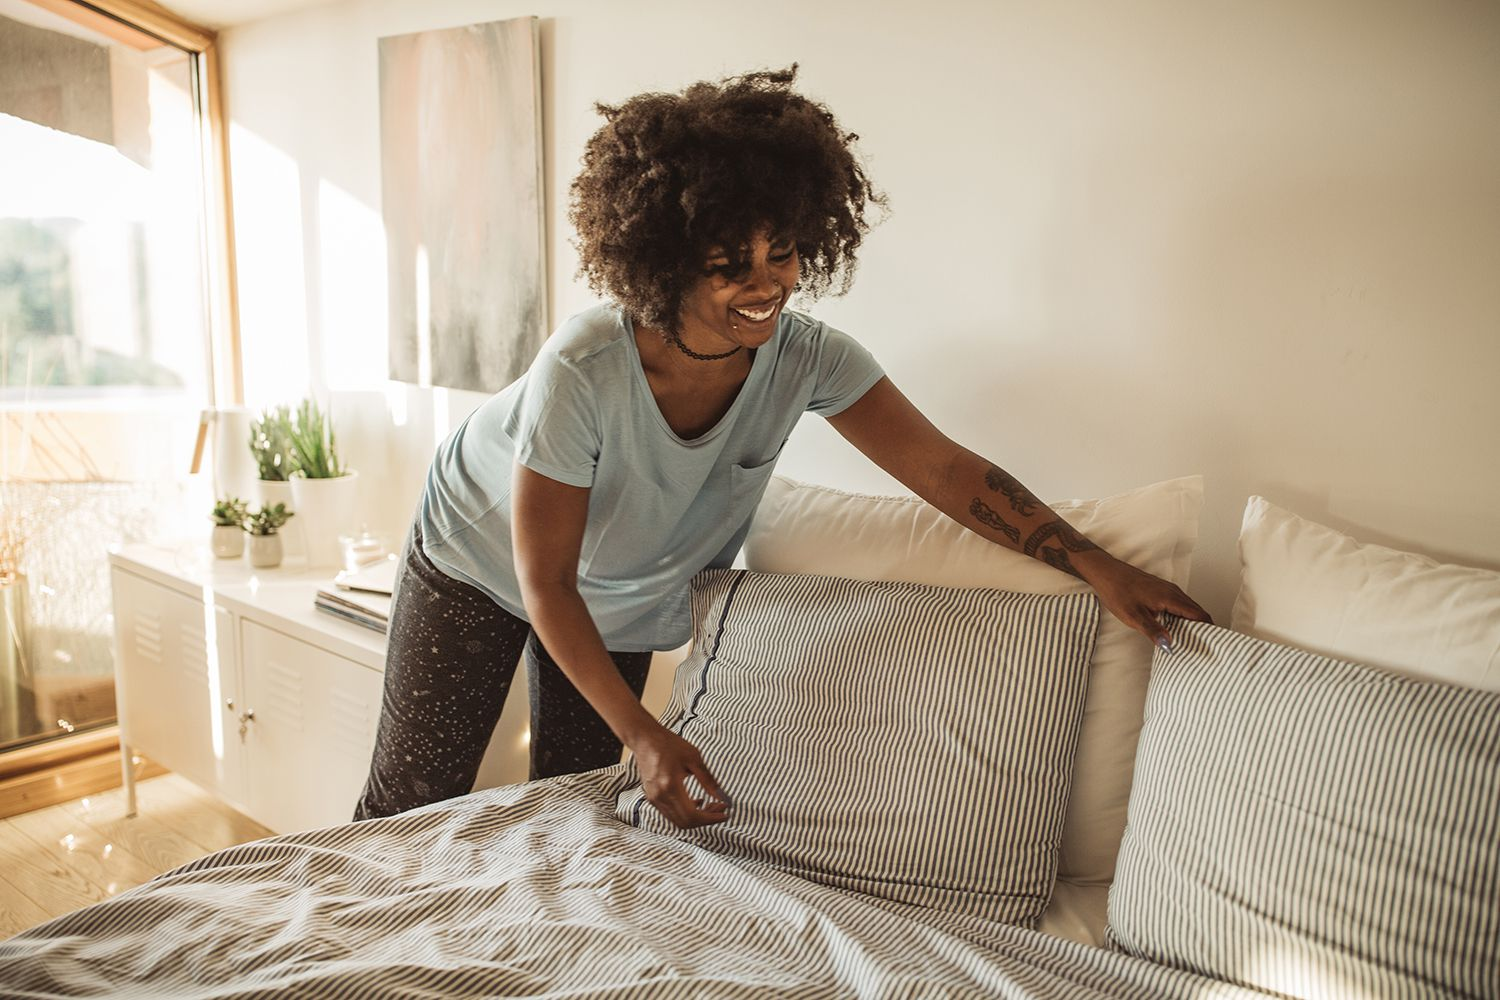 8 Bed-Making Mistakes and How to Fix Them